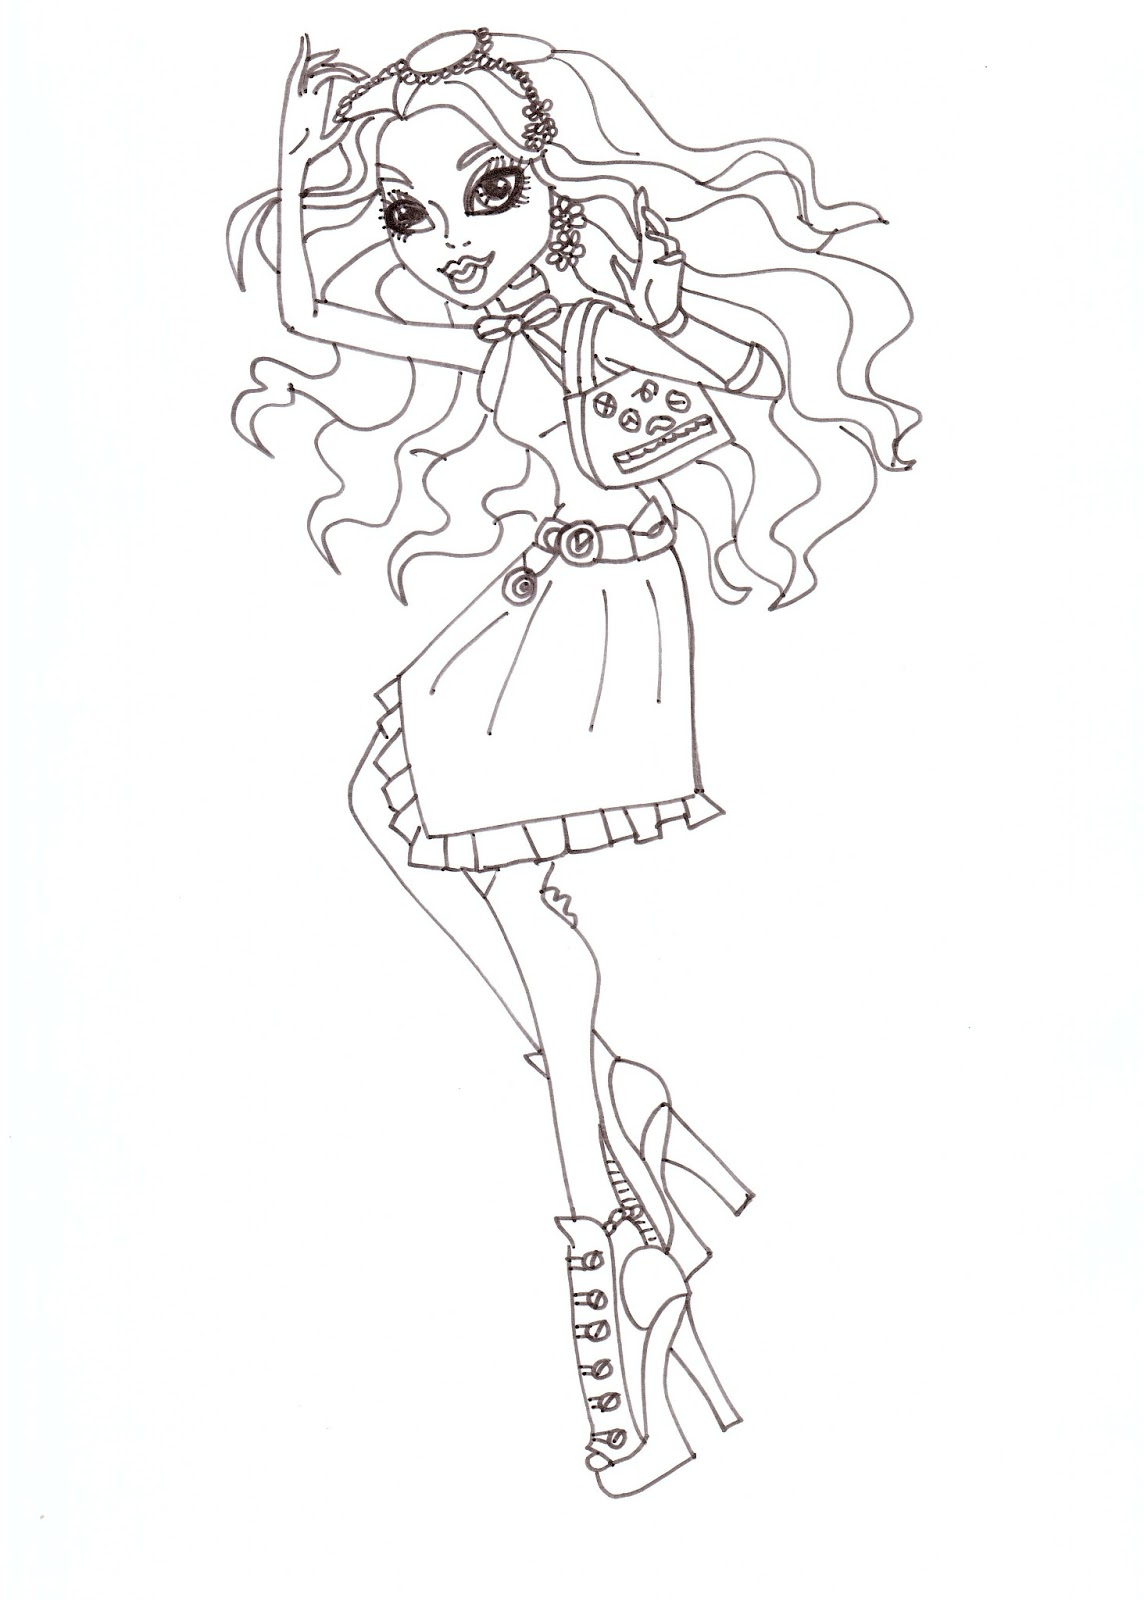 Free Printable Monster High Coloring Pages: Robecca